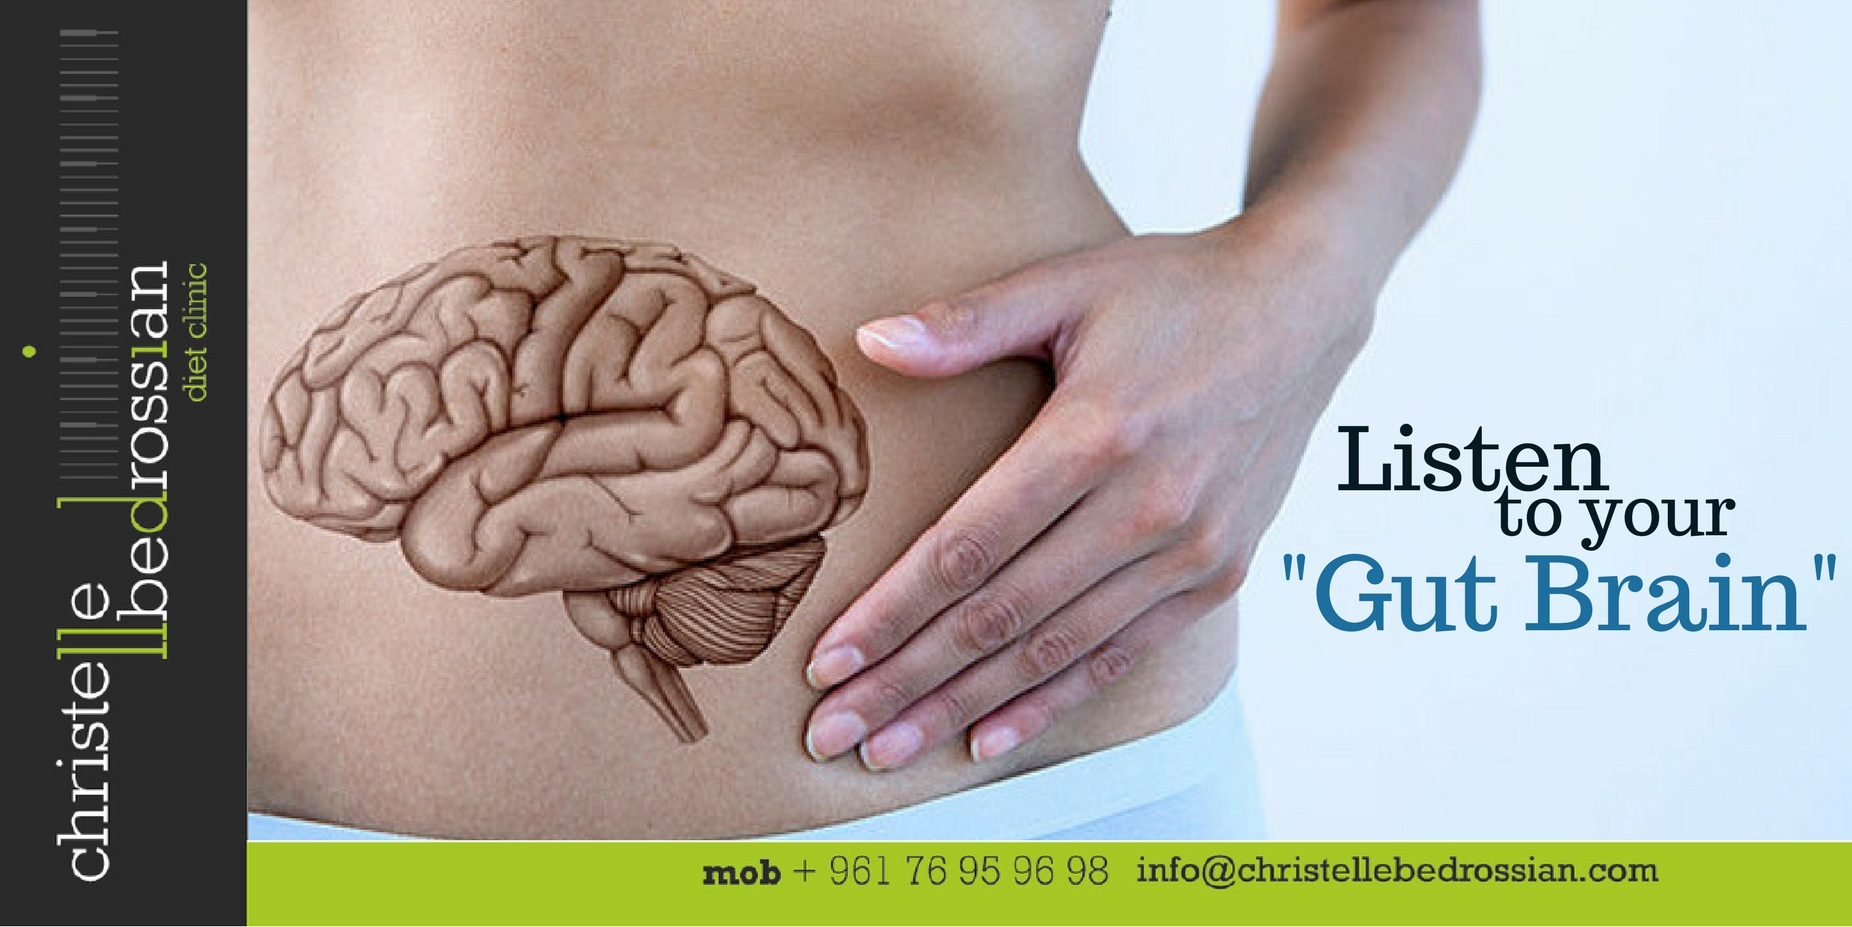 best dietitian lebanon, lebanon, diet, diet clinic, lose weight lebanon, healthy. gut-brain